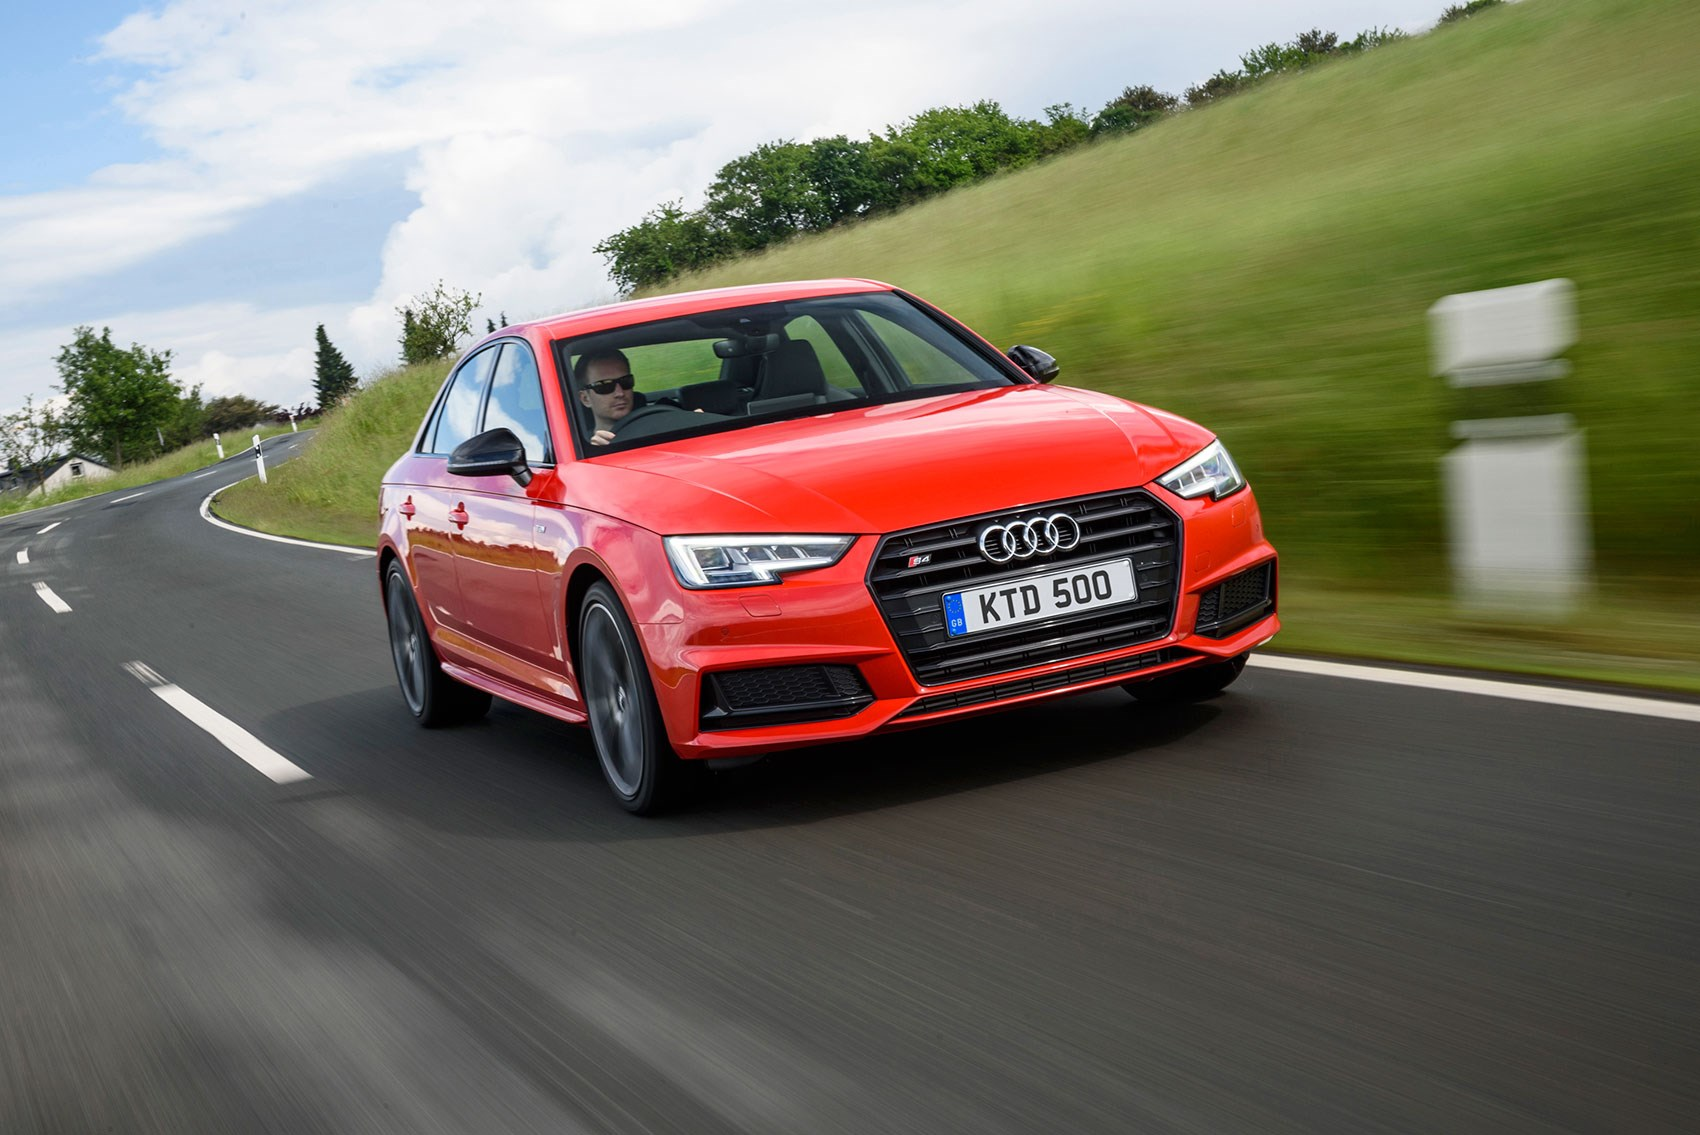 Audi s5 sportback 2017 review by car magazine - Audi S4 Saloon 2017 Review